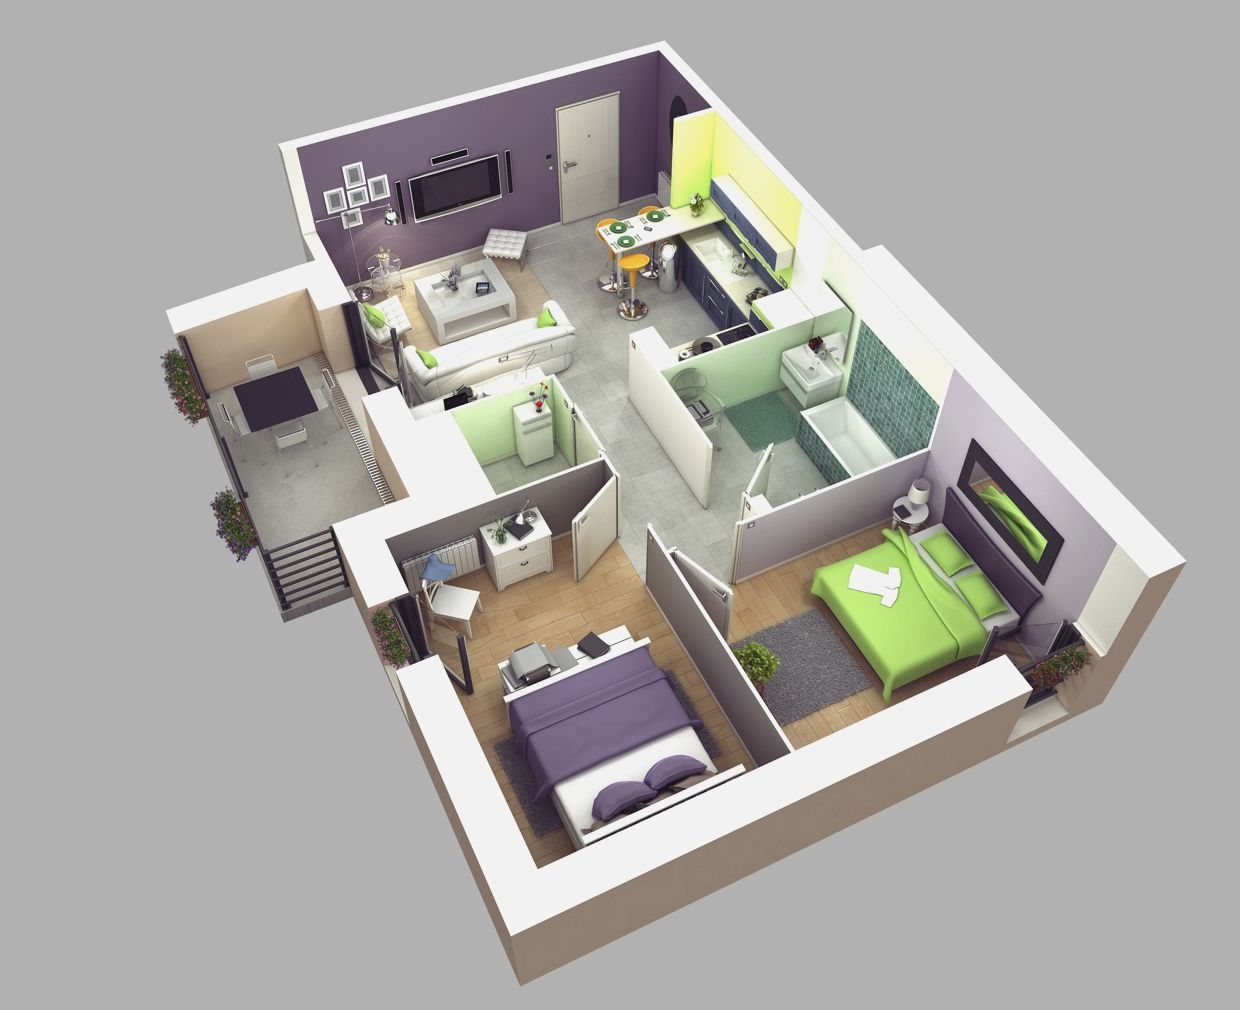 1 bedroom house plans 3d just the two of us apartment Build 2 bedroom house